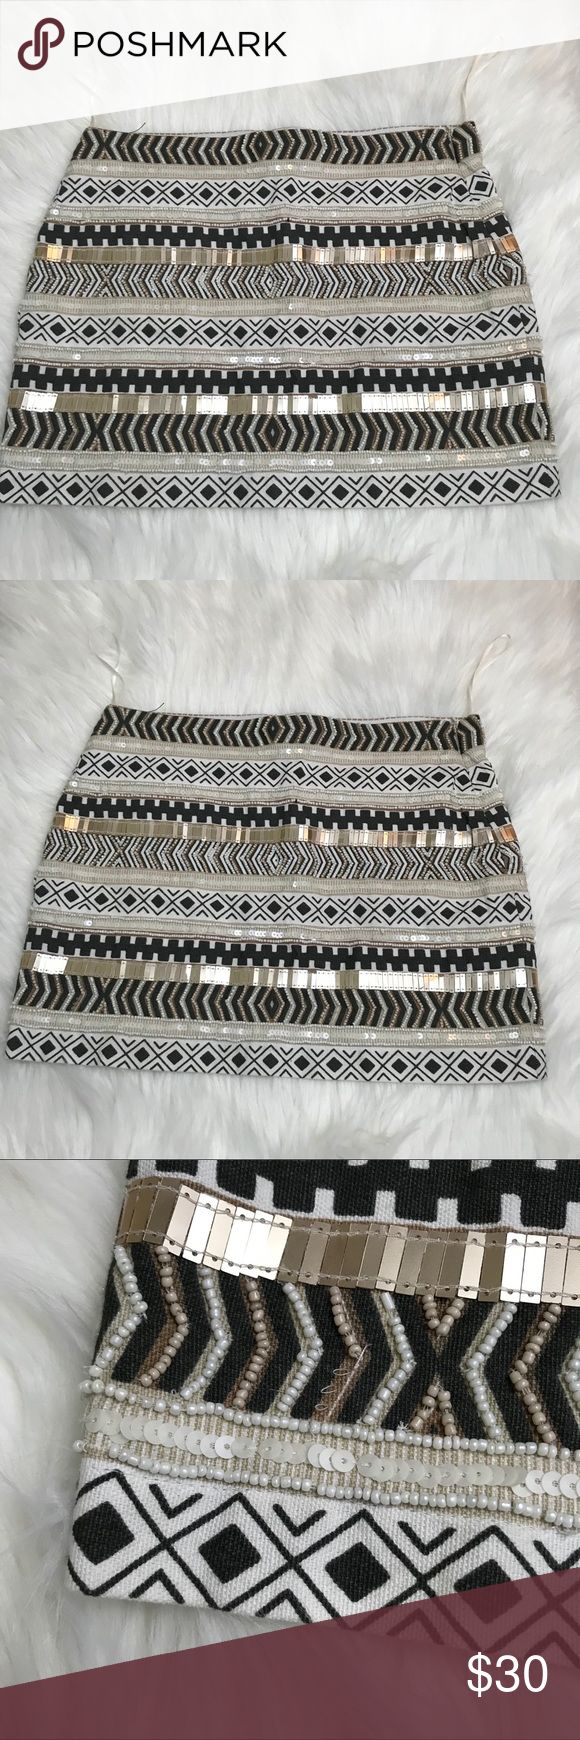 "Zara Trafaluc Sequin Aztec Mini Skirt Side zippered, Lined Sequined Aztec Style Zara Mini Skirt. Some sequins/beads missing as noted in photos but due to design of skirt not noticeable while wearing. Look at photos for wear. Besides that skirt is in great condition with no tears or stains. Waist 15"", length 13"" Zara Skirts Mini"